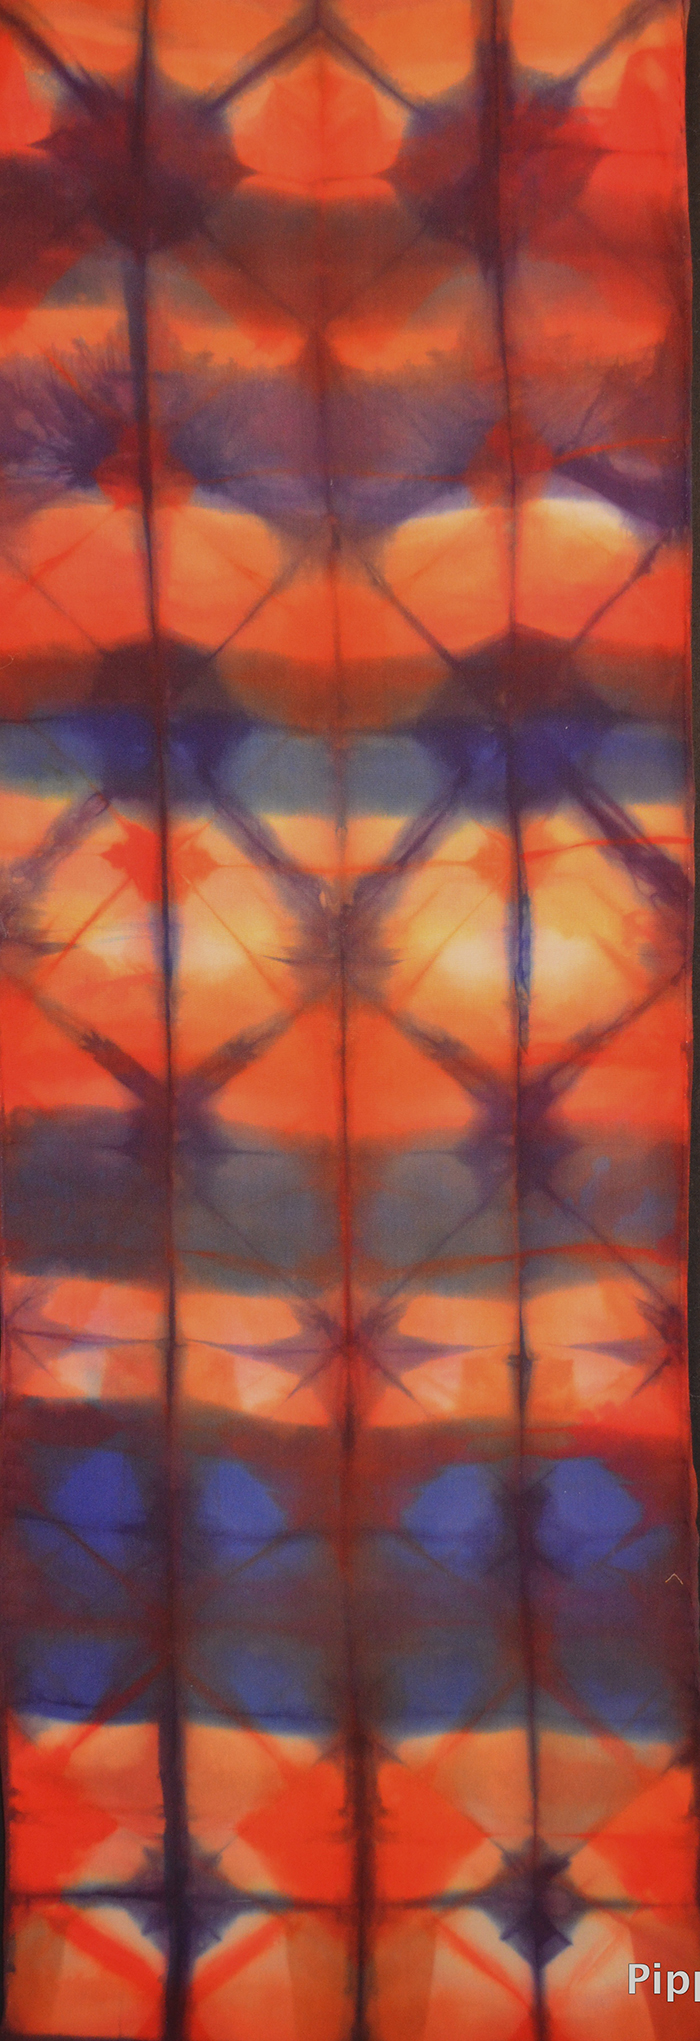 15x72, 2012, fold and clamp shibori, fiber-feactive dyes on crepe de chine